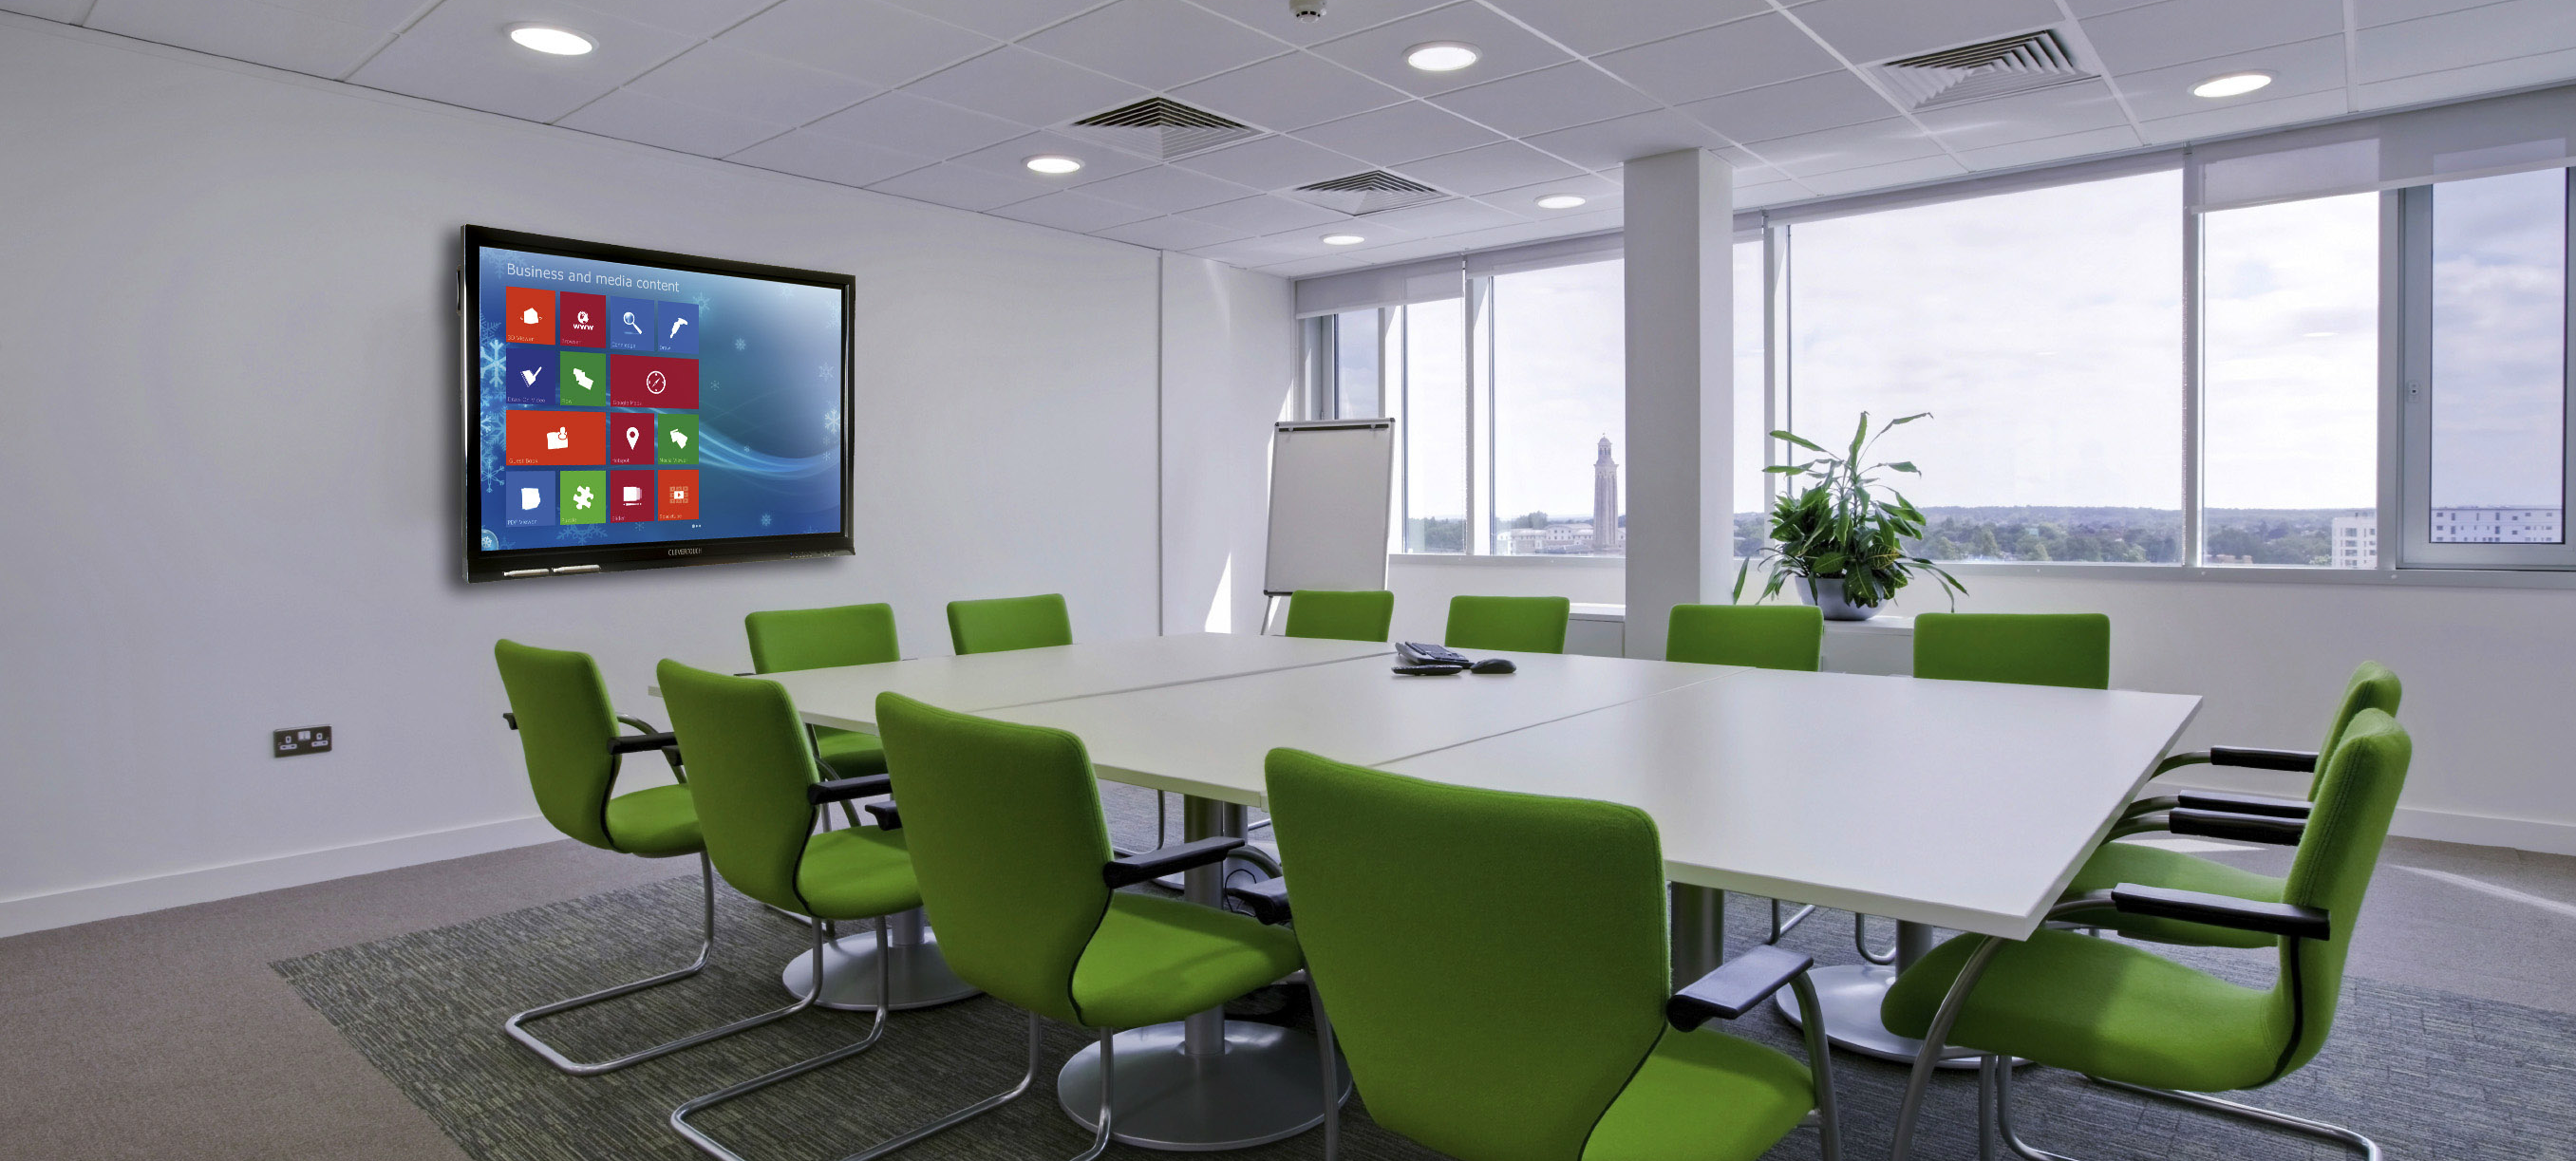 Clevertouch-Plus-in-boardroom4.png